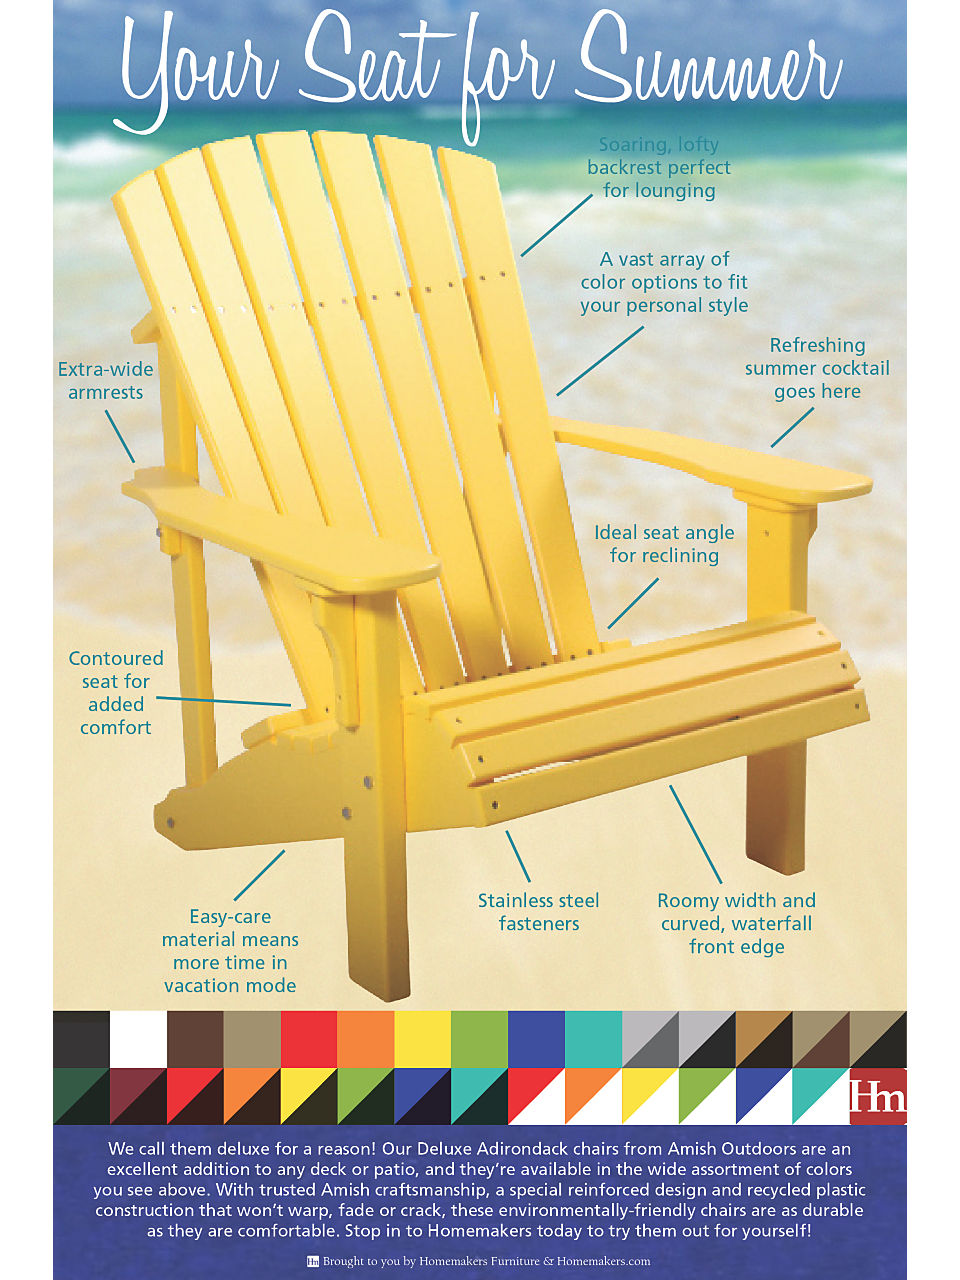 Enjoy comfort, durability and classic style with an Adirondack chair.